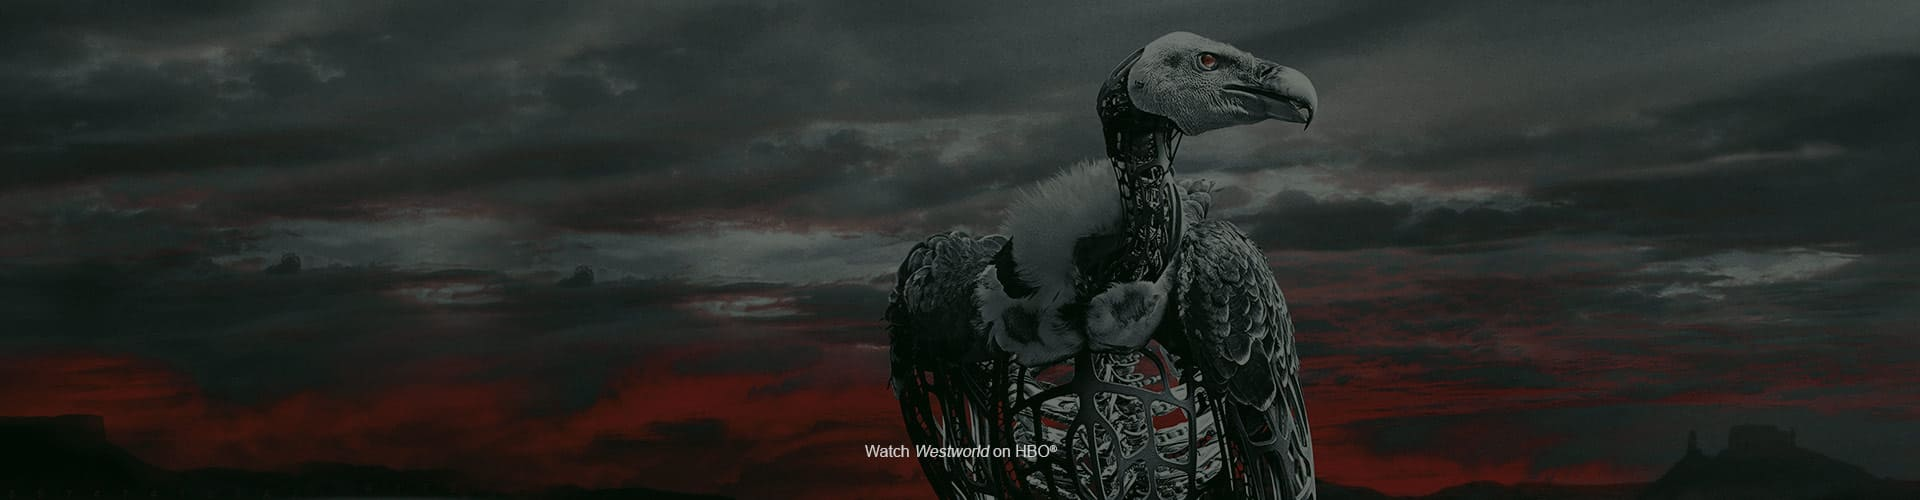 Watch Westworld on HBO®